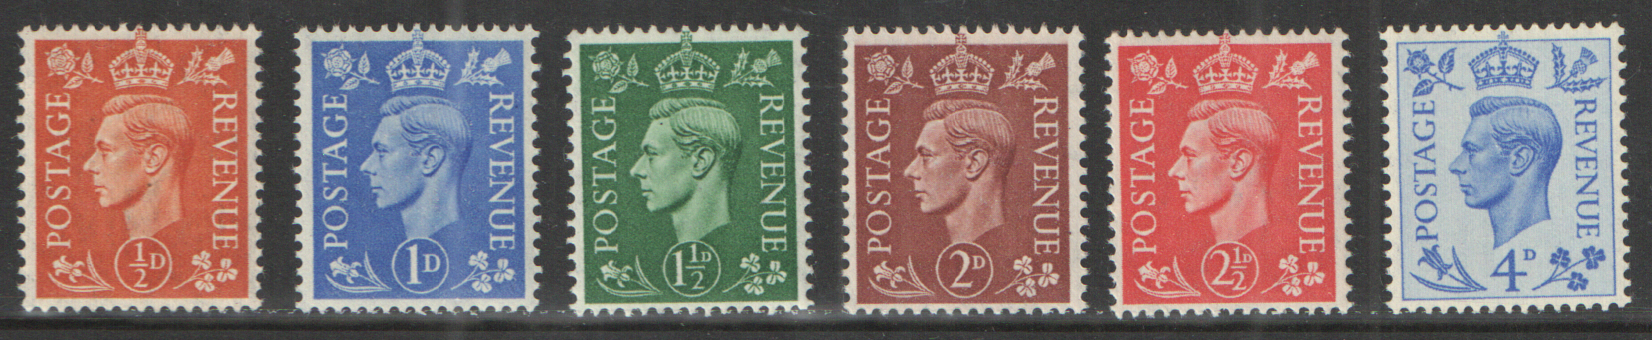 SG503 / 08 George VI 1950 New Colours unmounted mint set of 6